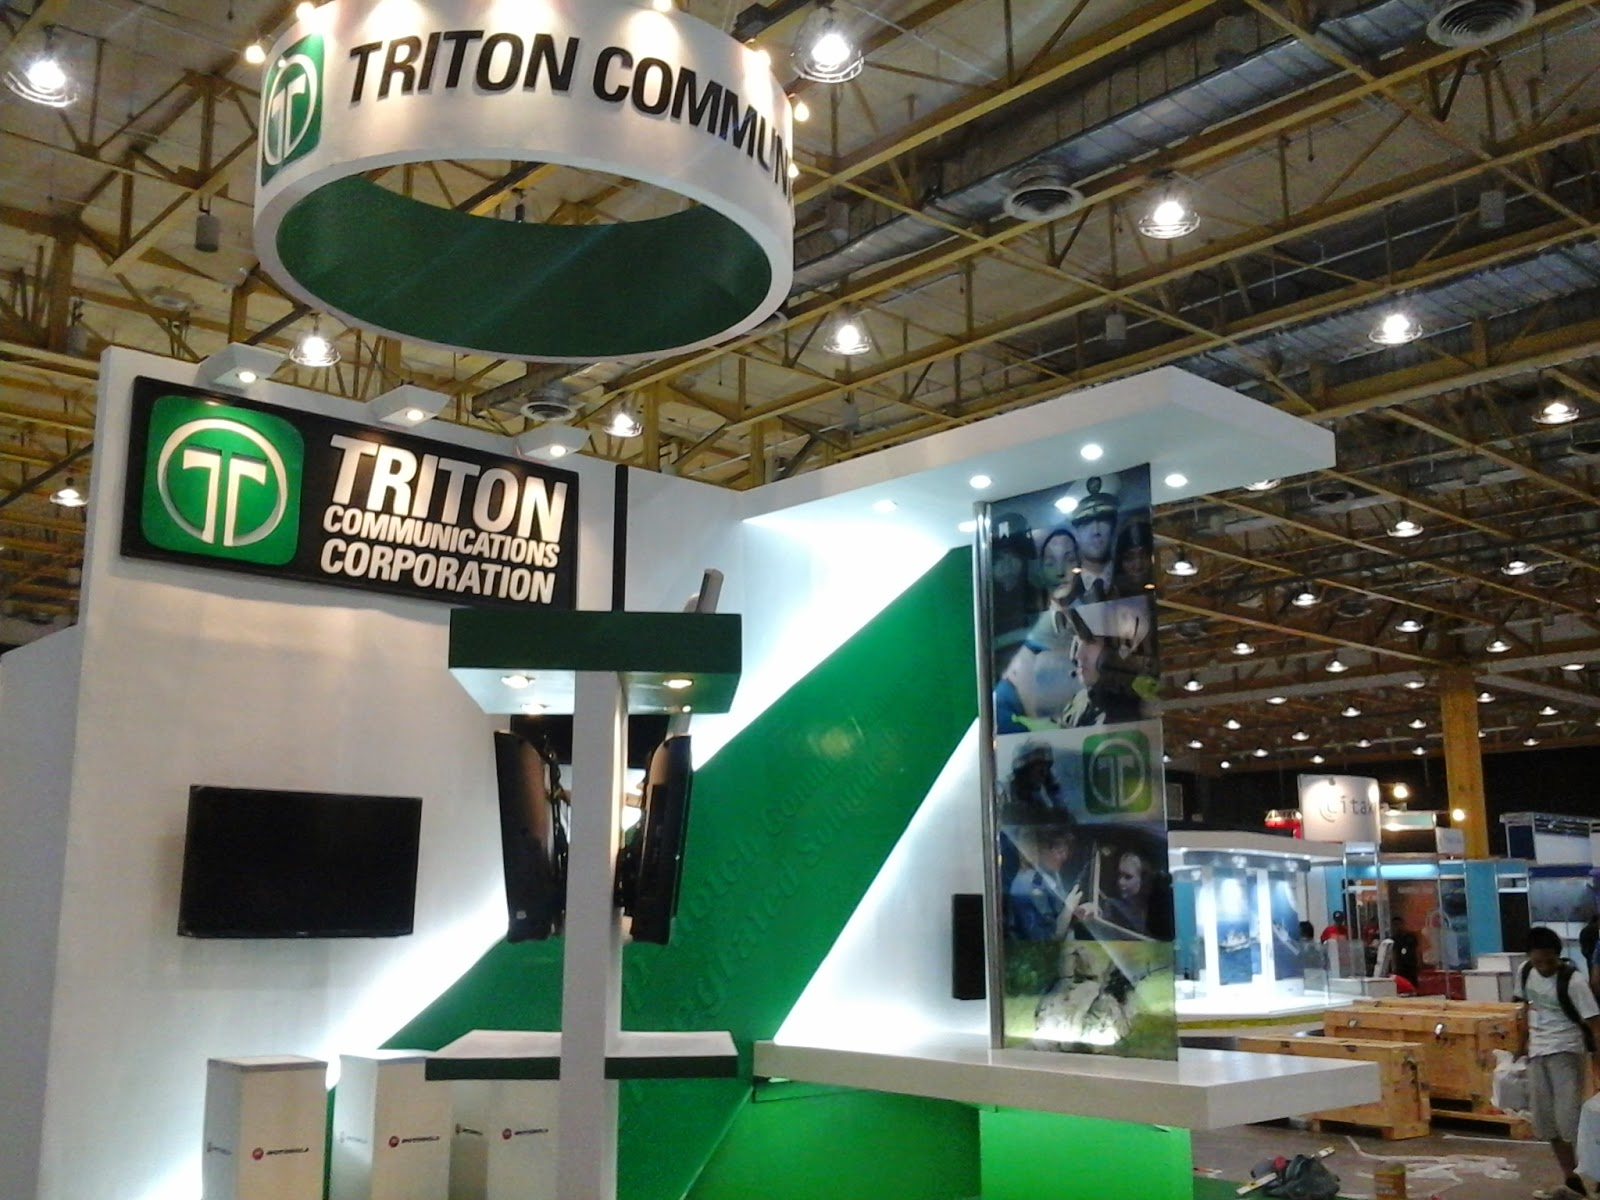 Close-up view of Triton Communications Corporation Trade Show Booth